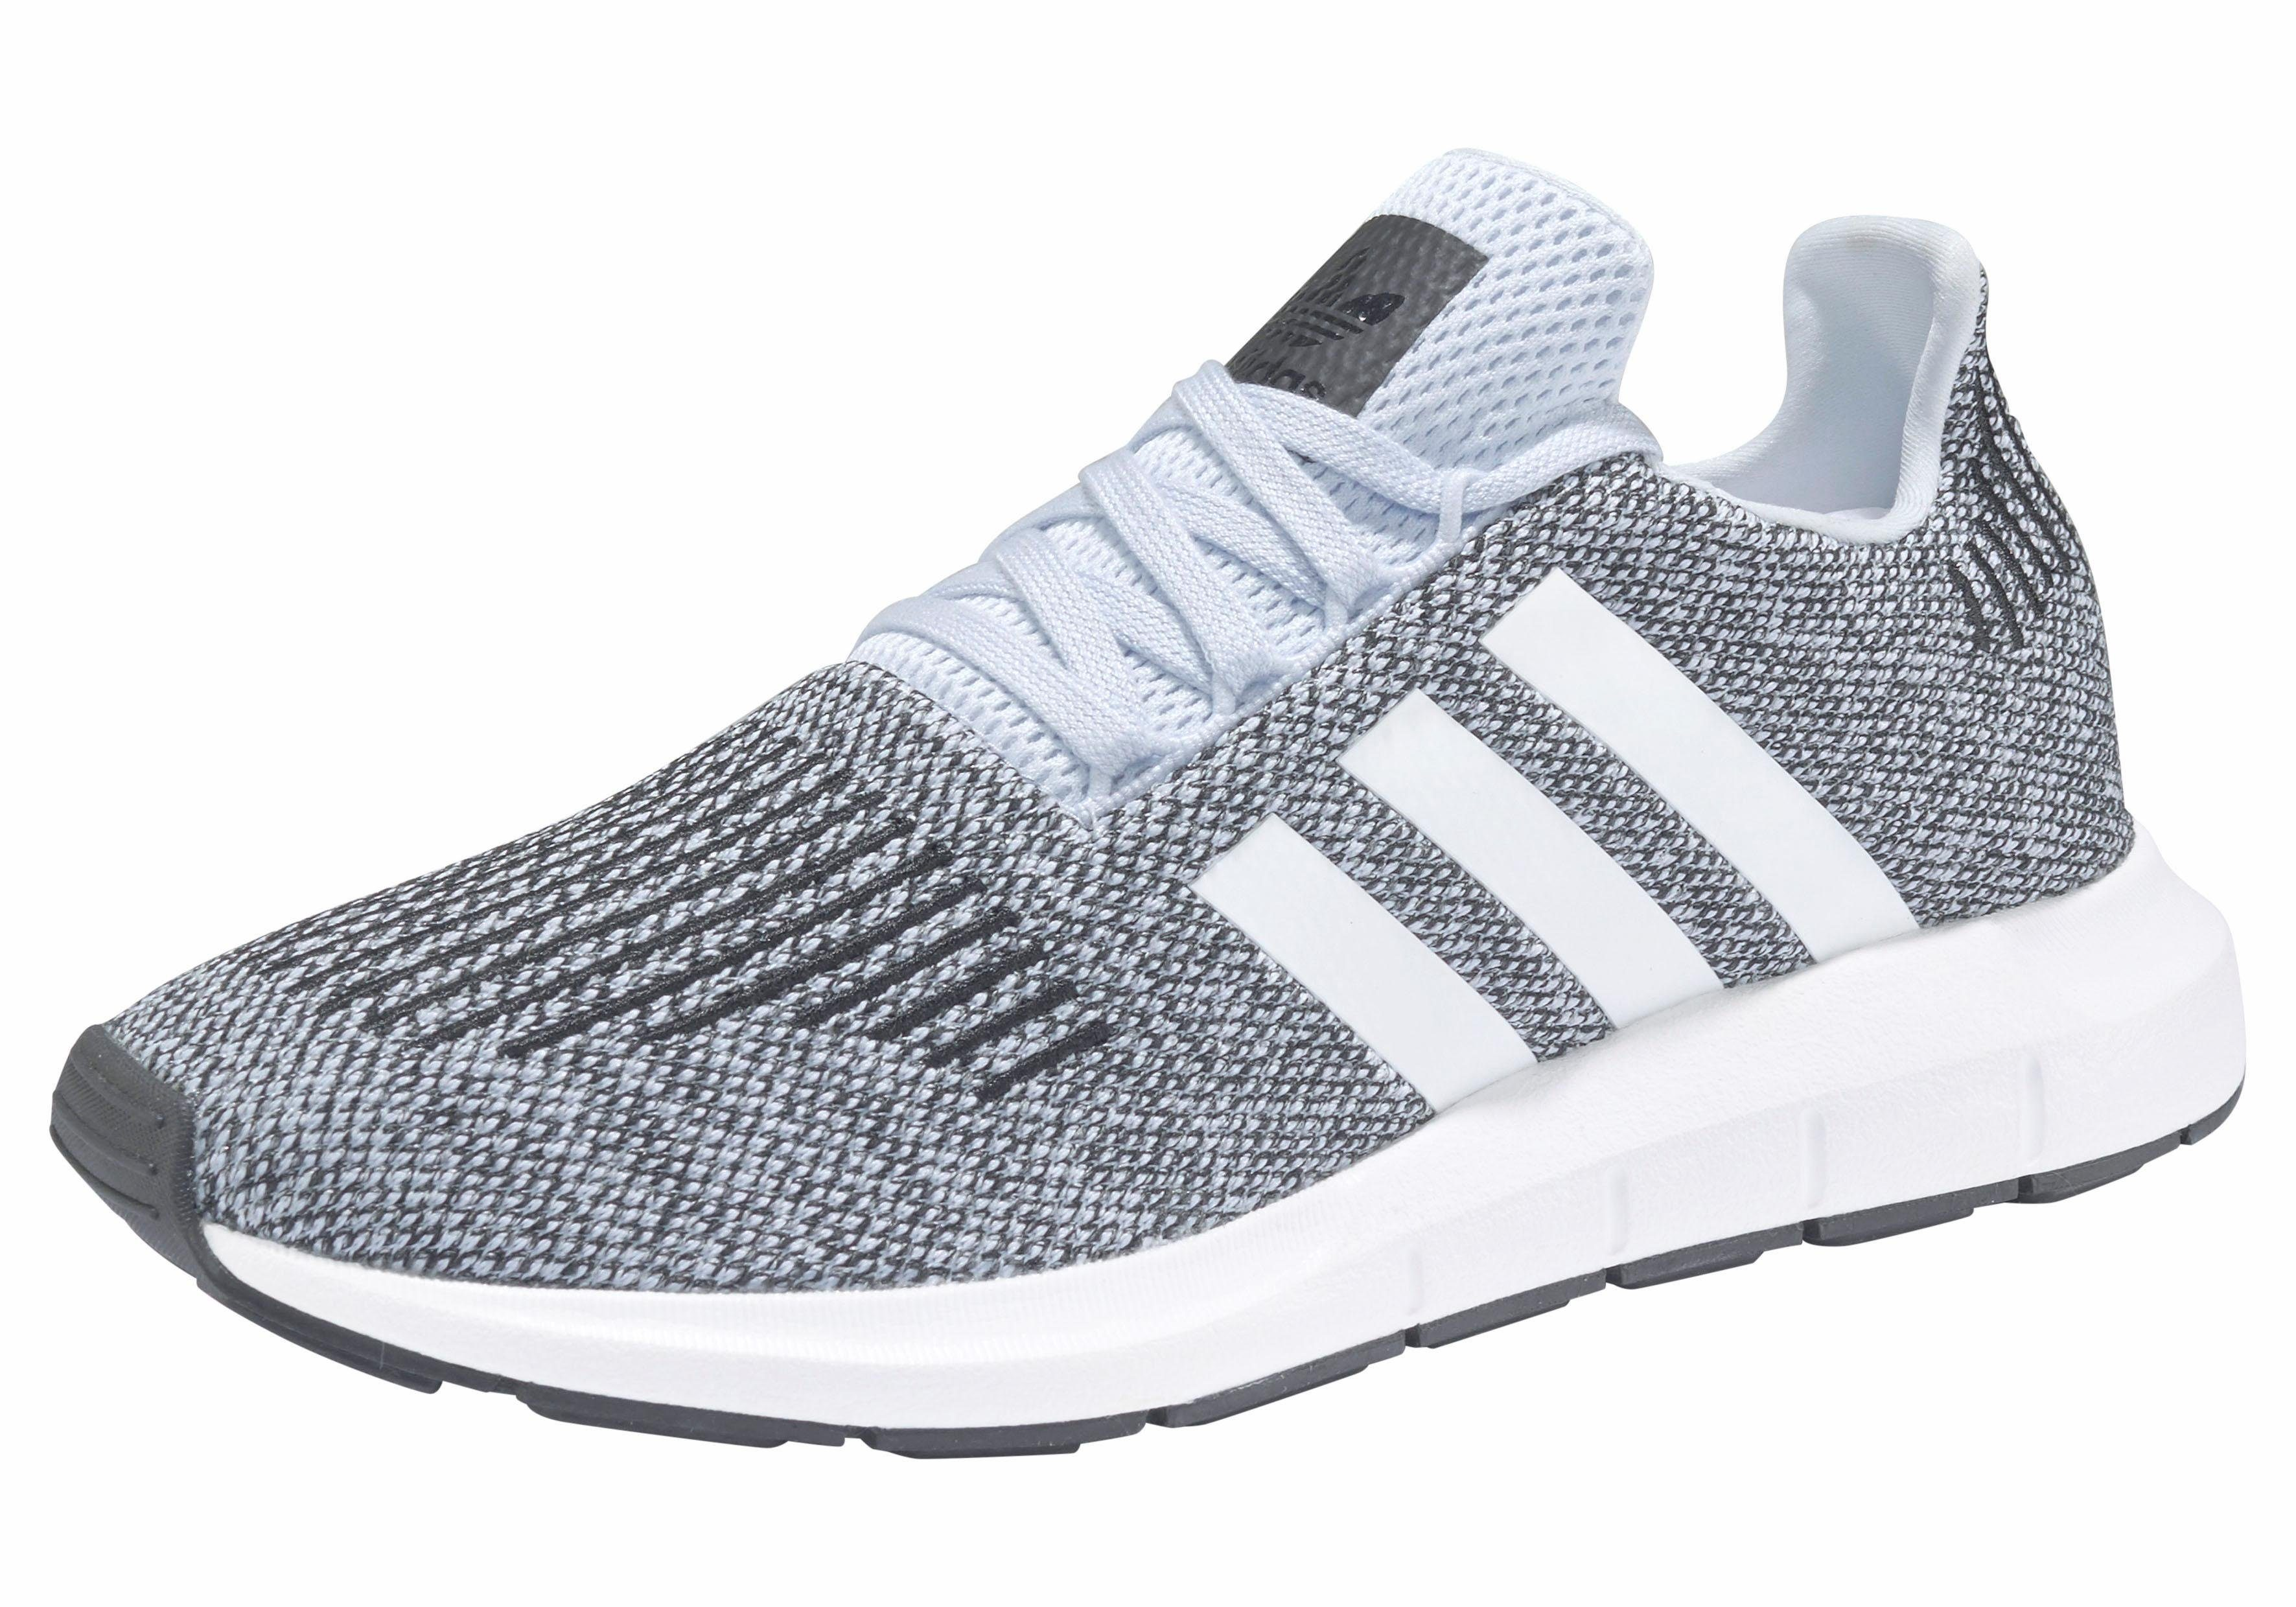 Top 10 Punto Medio Noticias | Adidas Schuhe Swift Run Kinder